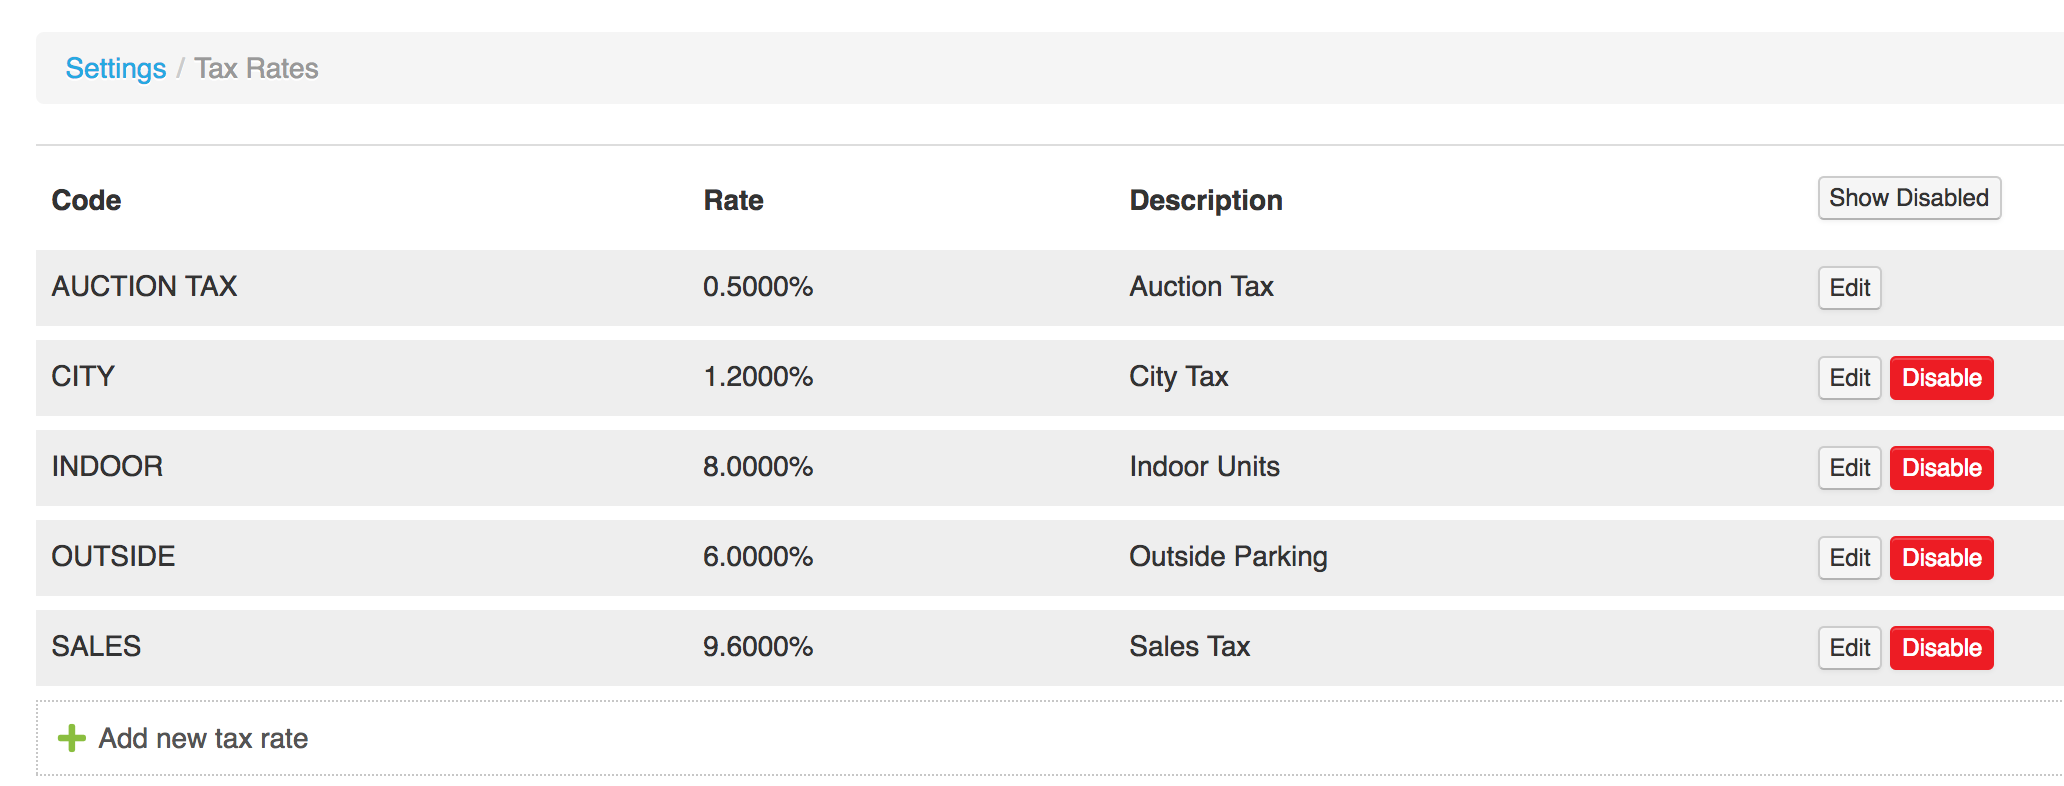 auction_tax_rate.png